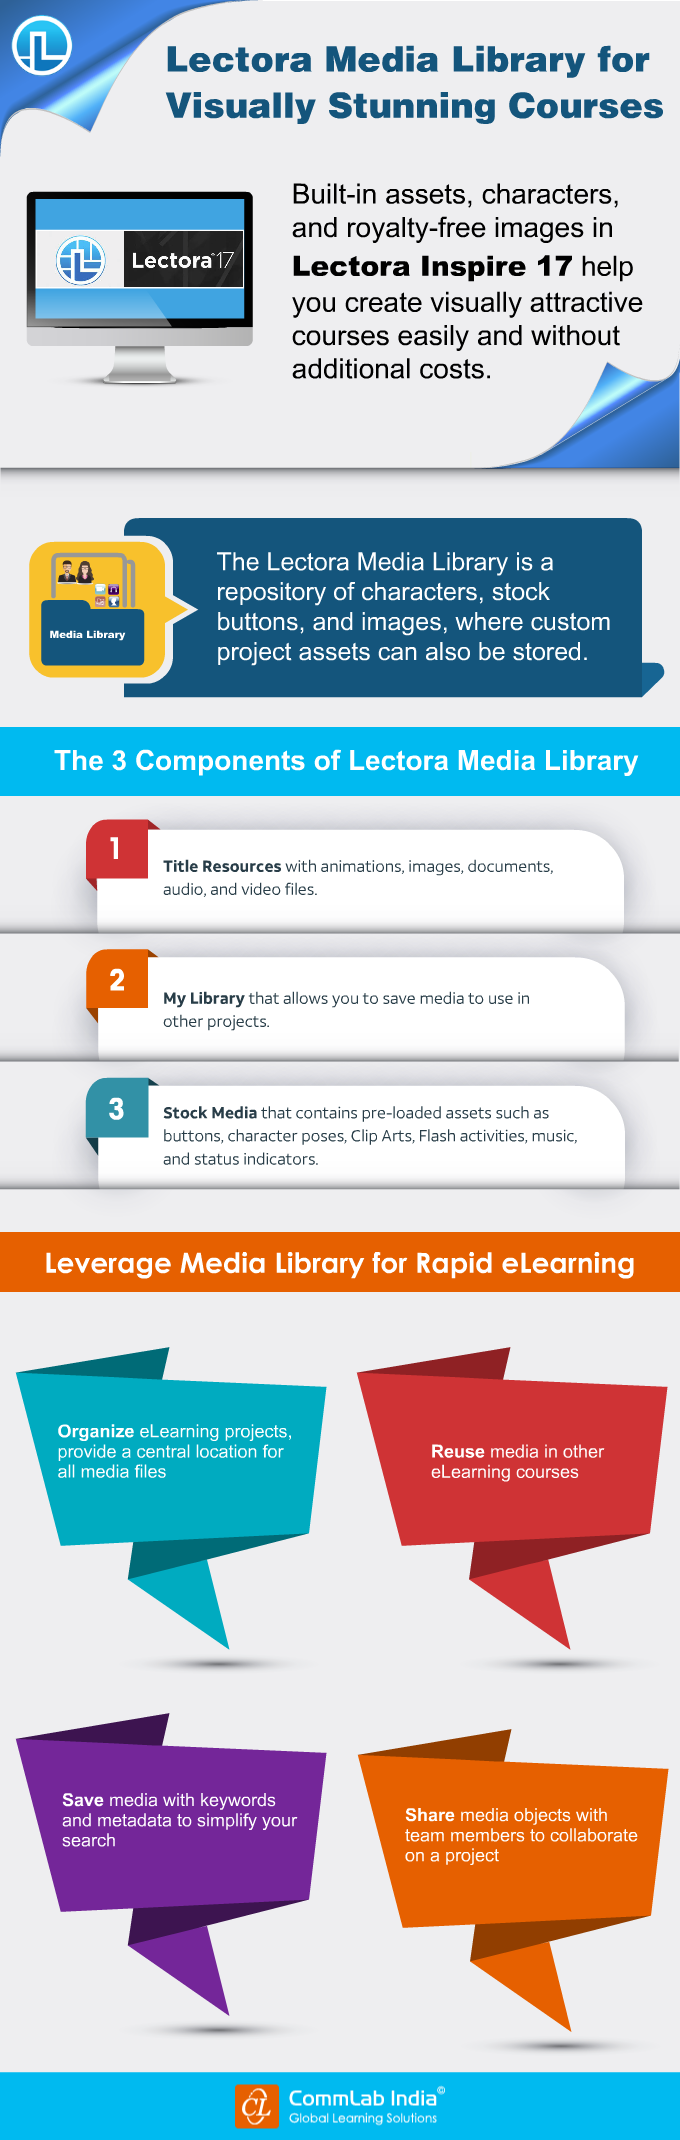 Lectora Media Library for Visually Stunning Courses [Infographic]